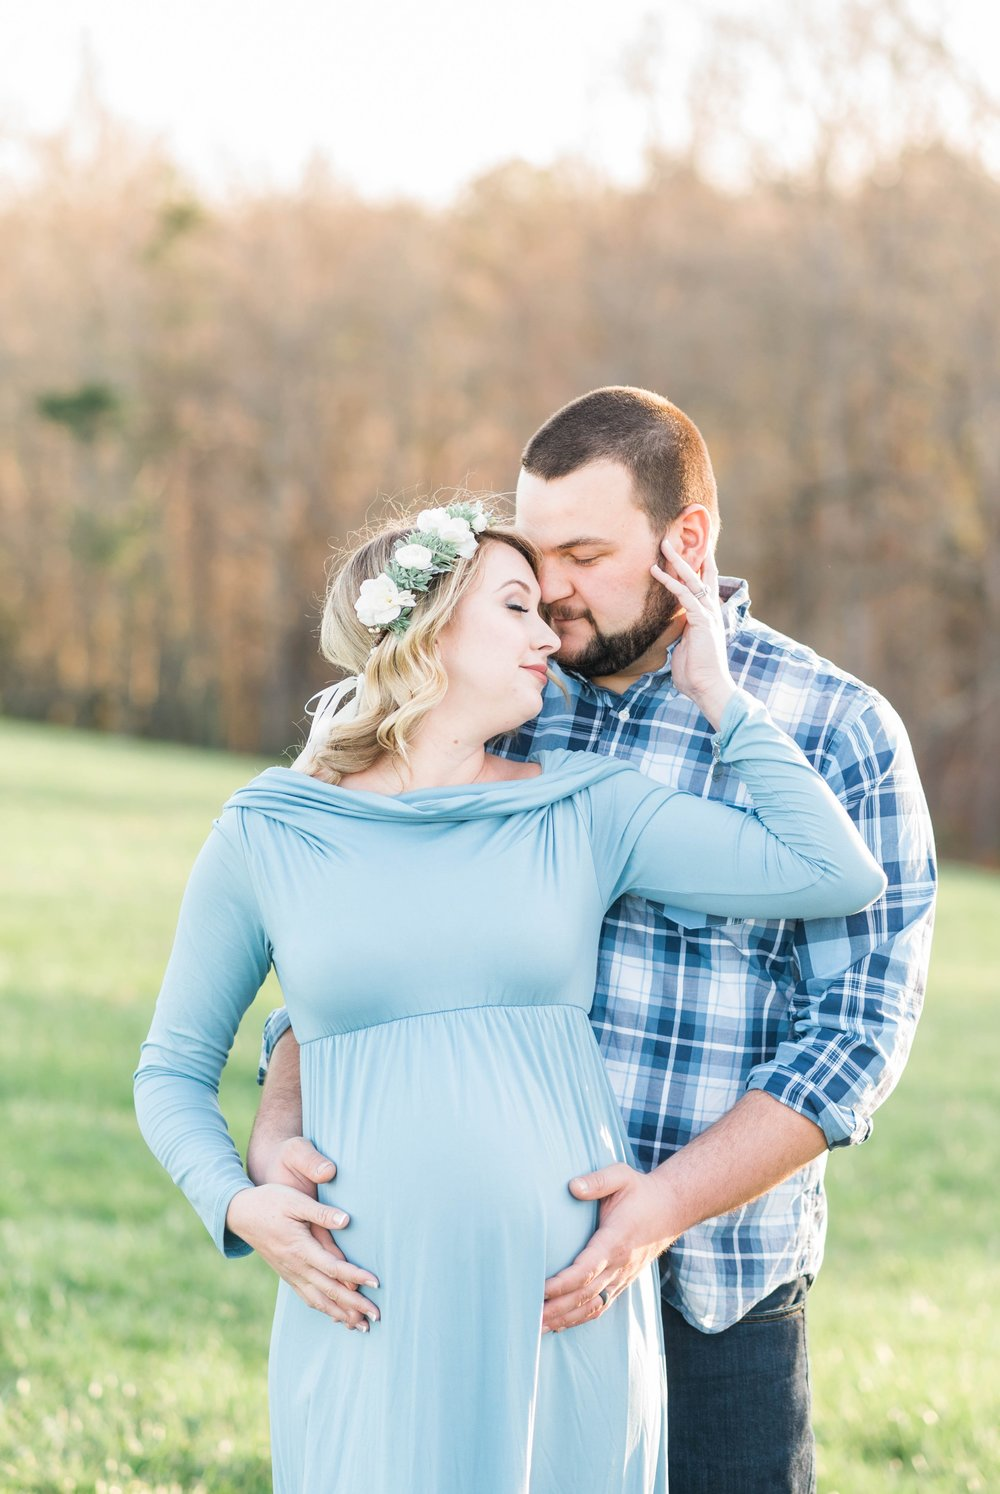 SorellaFarms_Jessica+Dylan_MaternitySession_Virginiaweddingphotographer 32.jpg